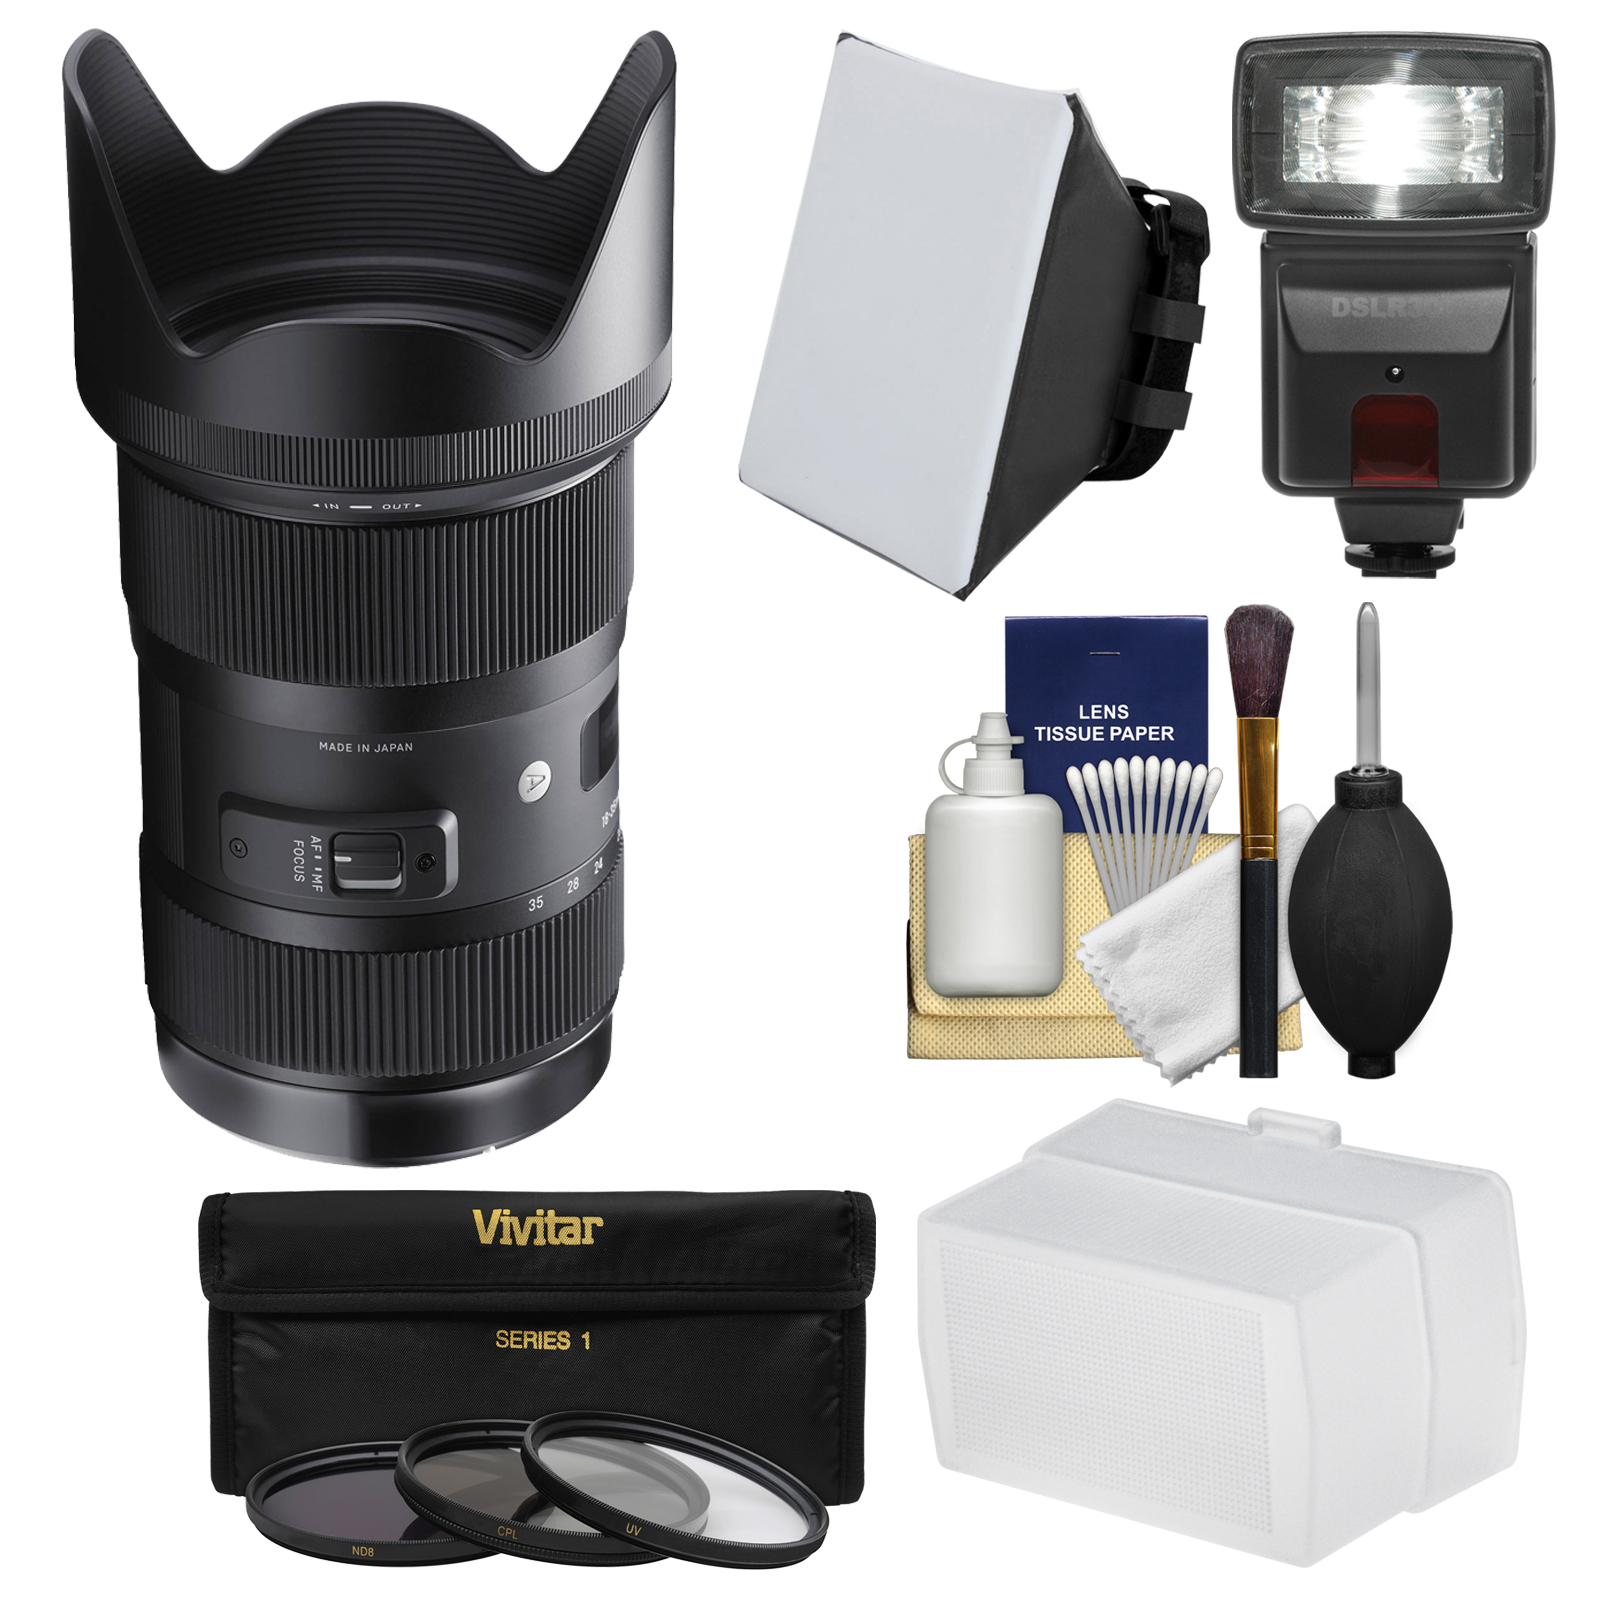 Sigma 18-35mm f/1.8 Art DC HSM Zoom Lens for Canon EOS DSLR Cameras with Flash + Soft Box & Diffuser + 3 UV/CPL/ND8 Filters + Kit